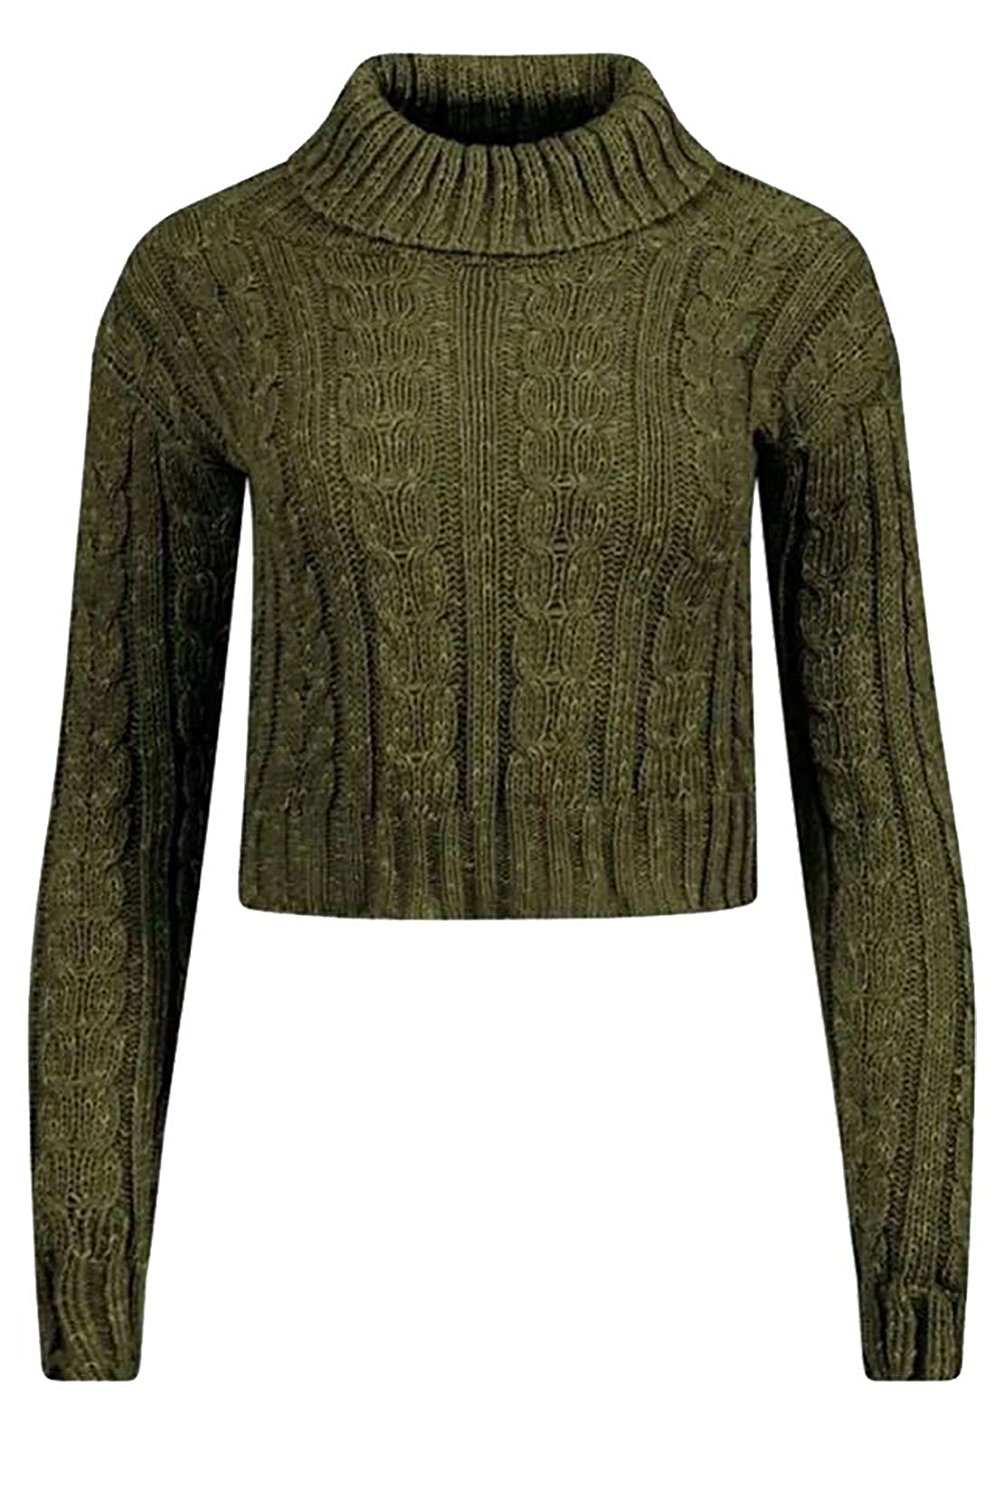 Rimi Hanger Womens Polo Neck Cable Knitted Crop Jumper Ladies Long Sleeve Fancy Sweater Top S, M, L